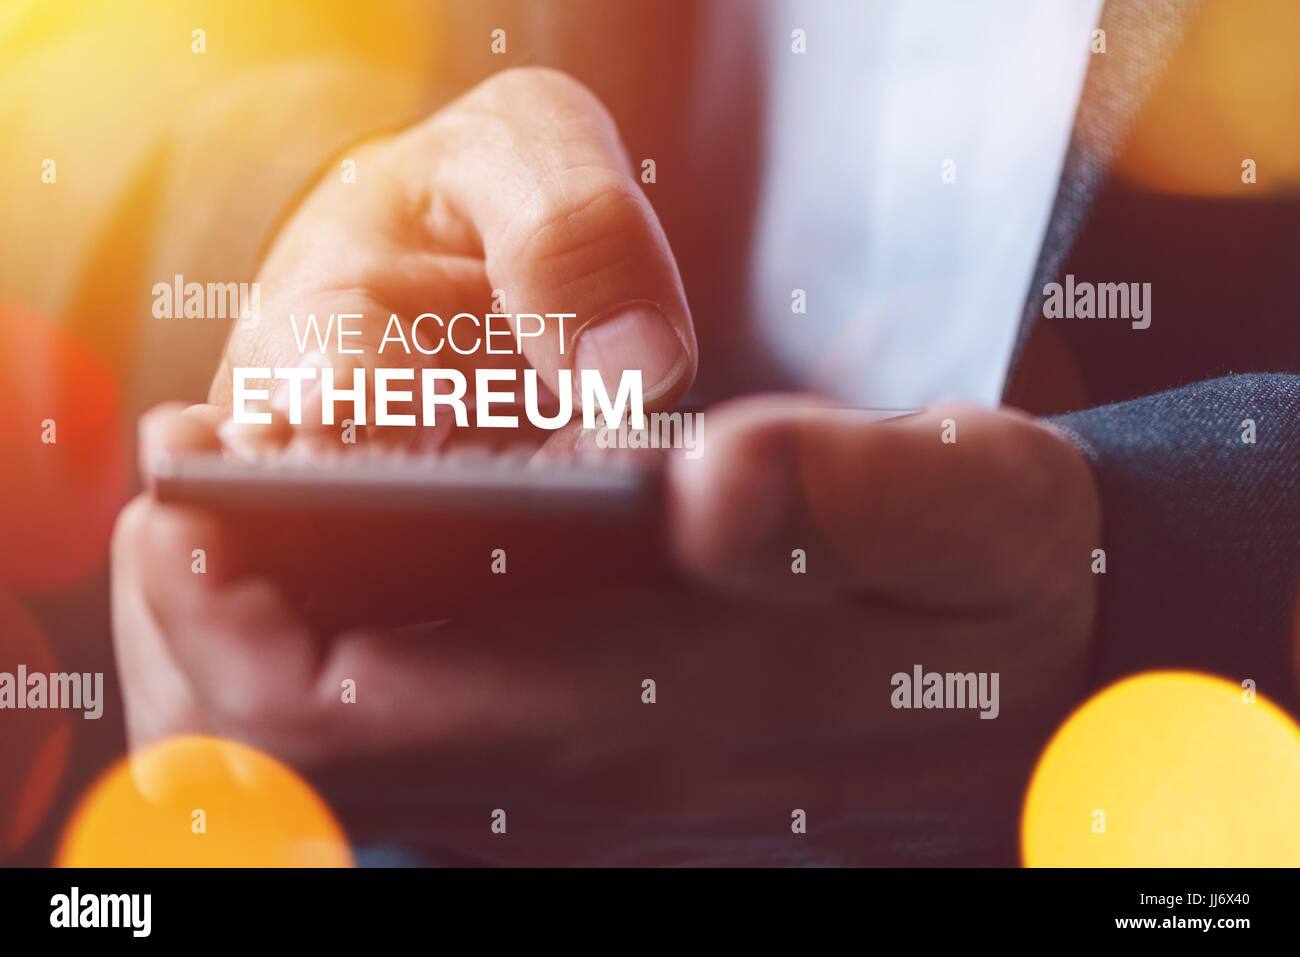 We accept Ethereum cryptocurrency concept with businessman - Stock Image